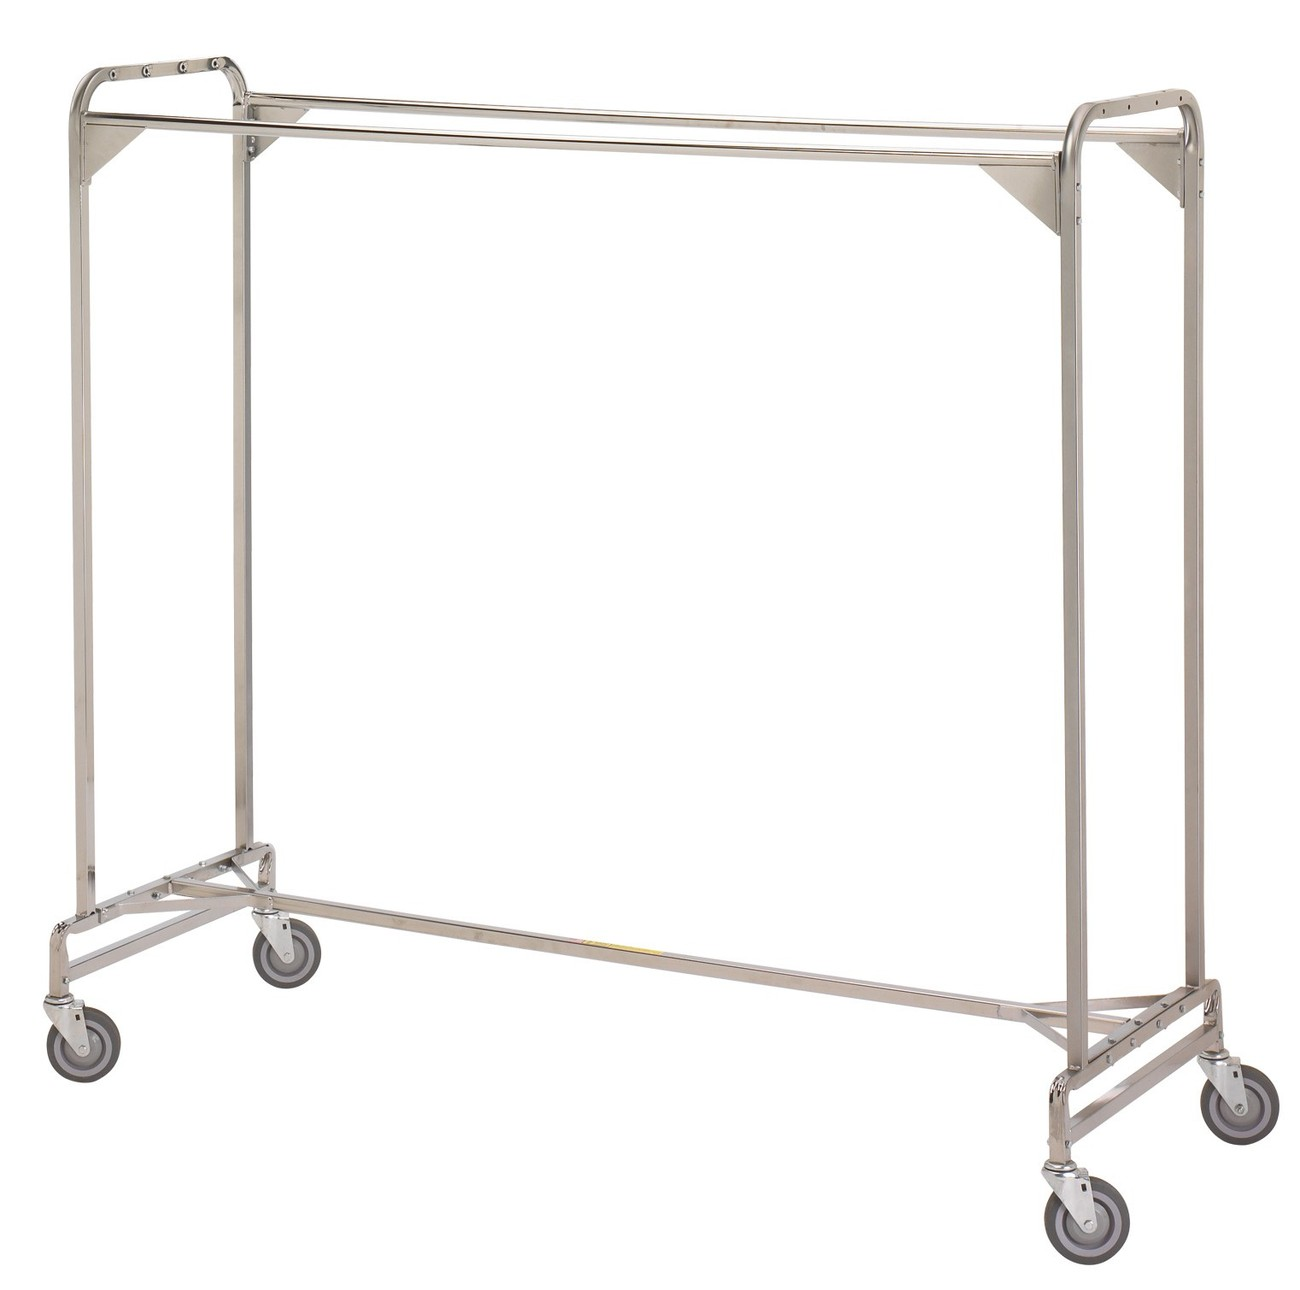 "72"" Double Garment Rack Model Number 722"